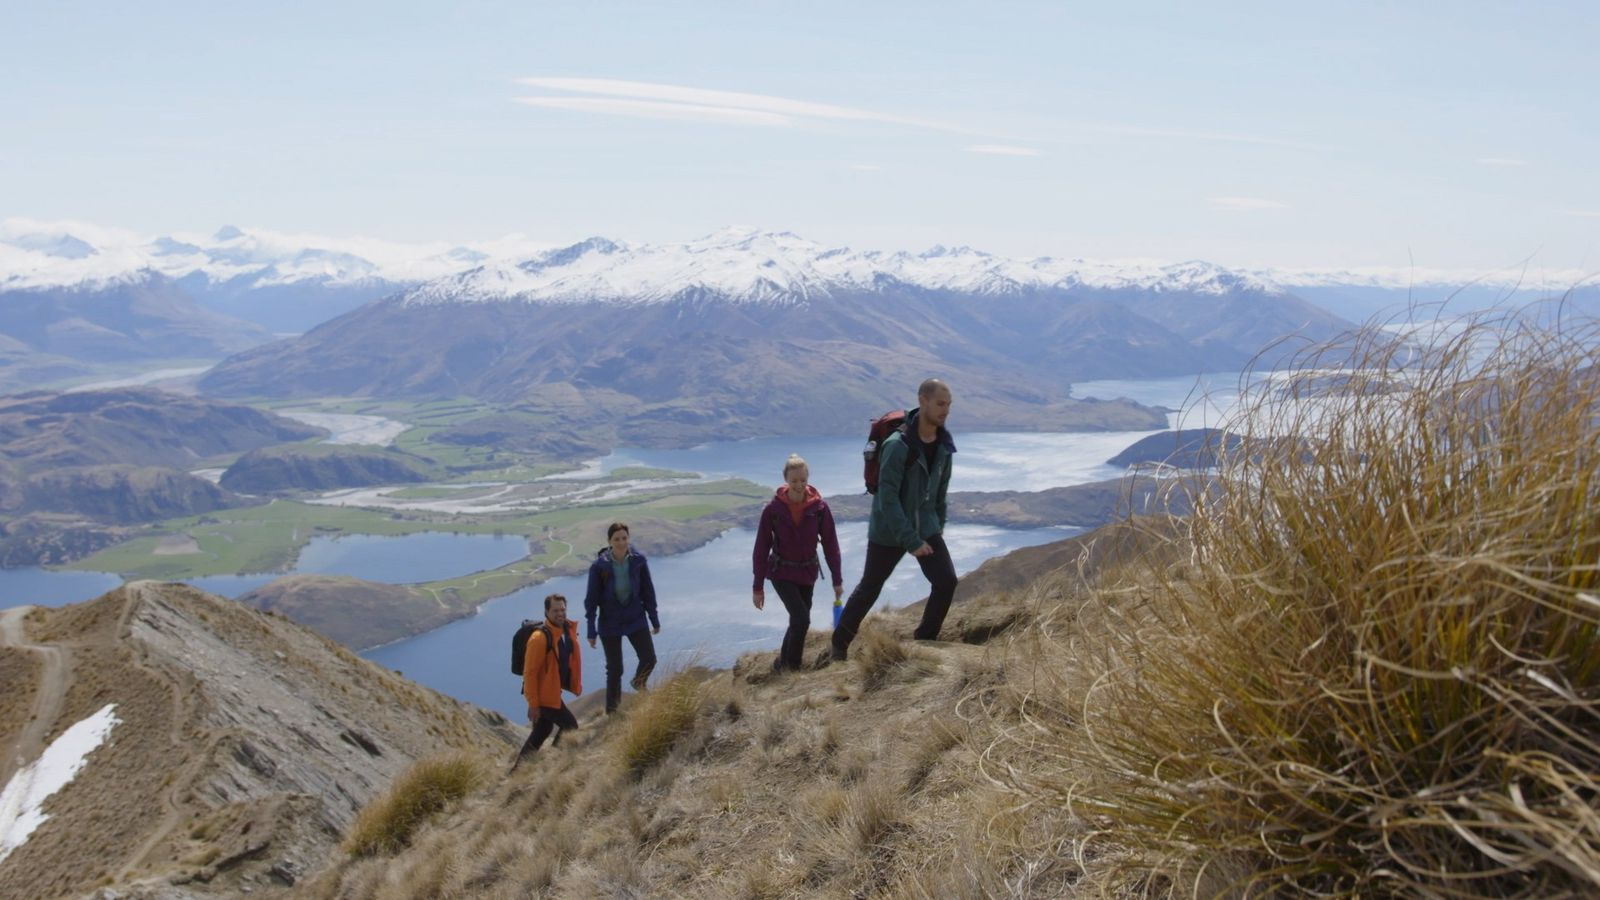 Have you been to New Zealand?